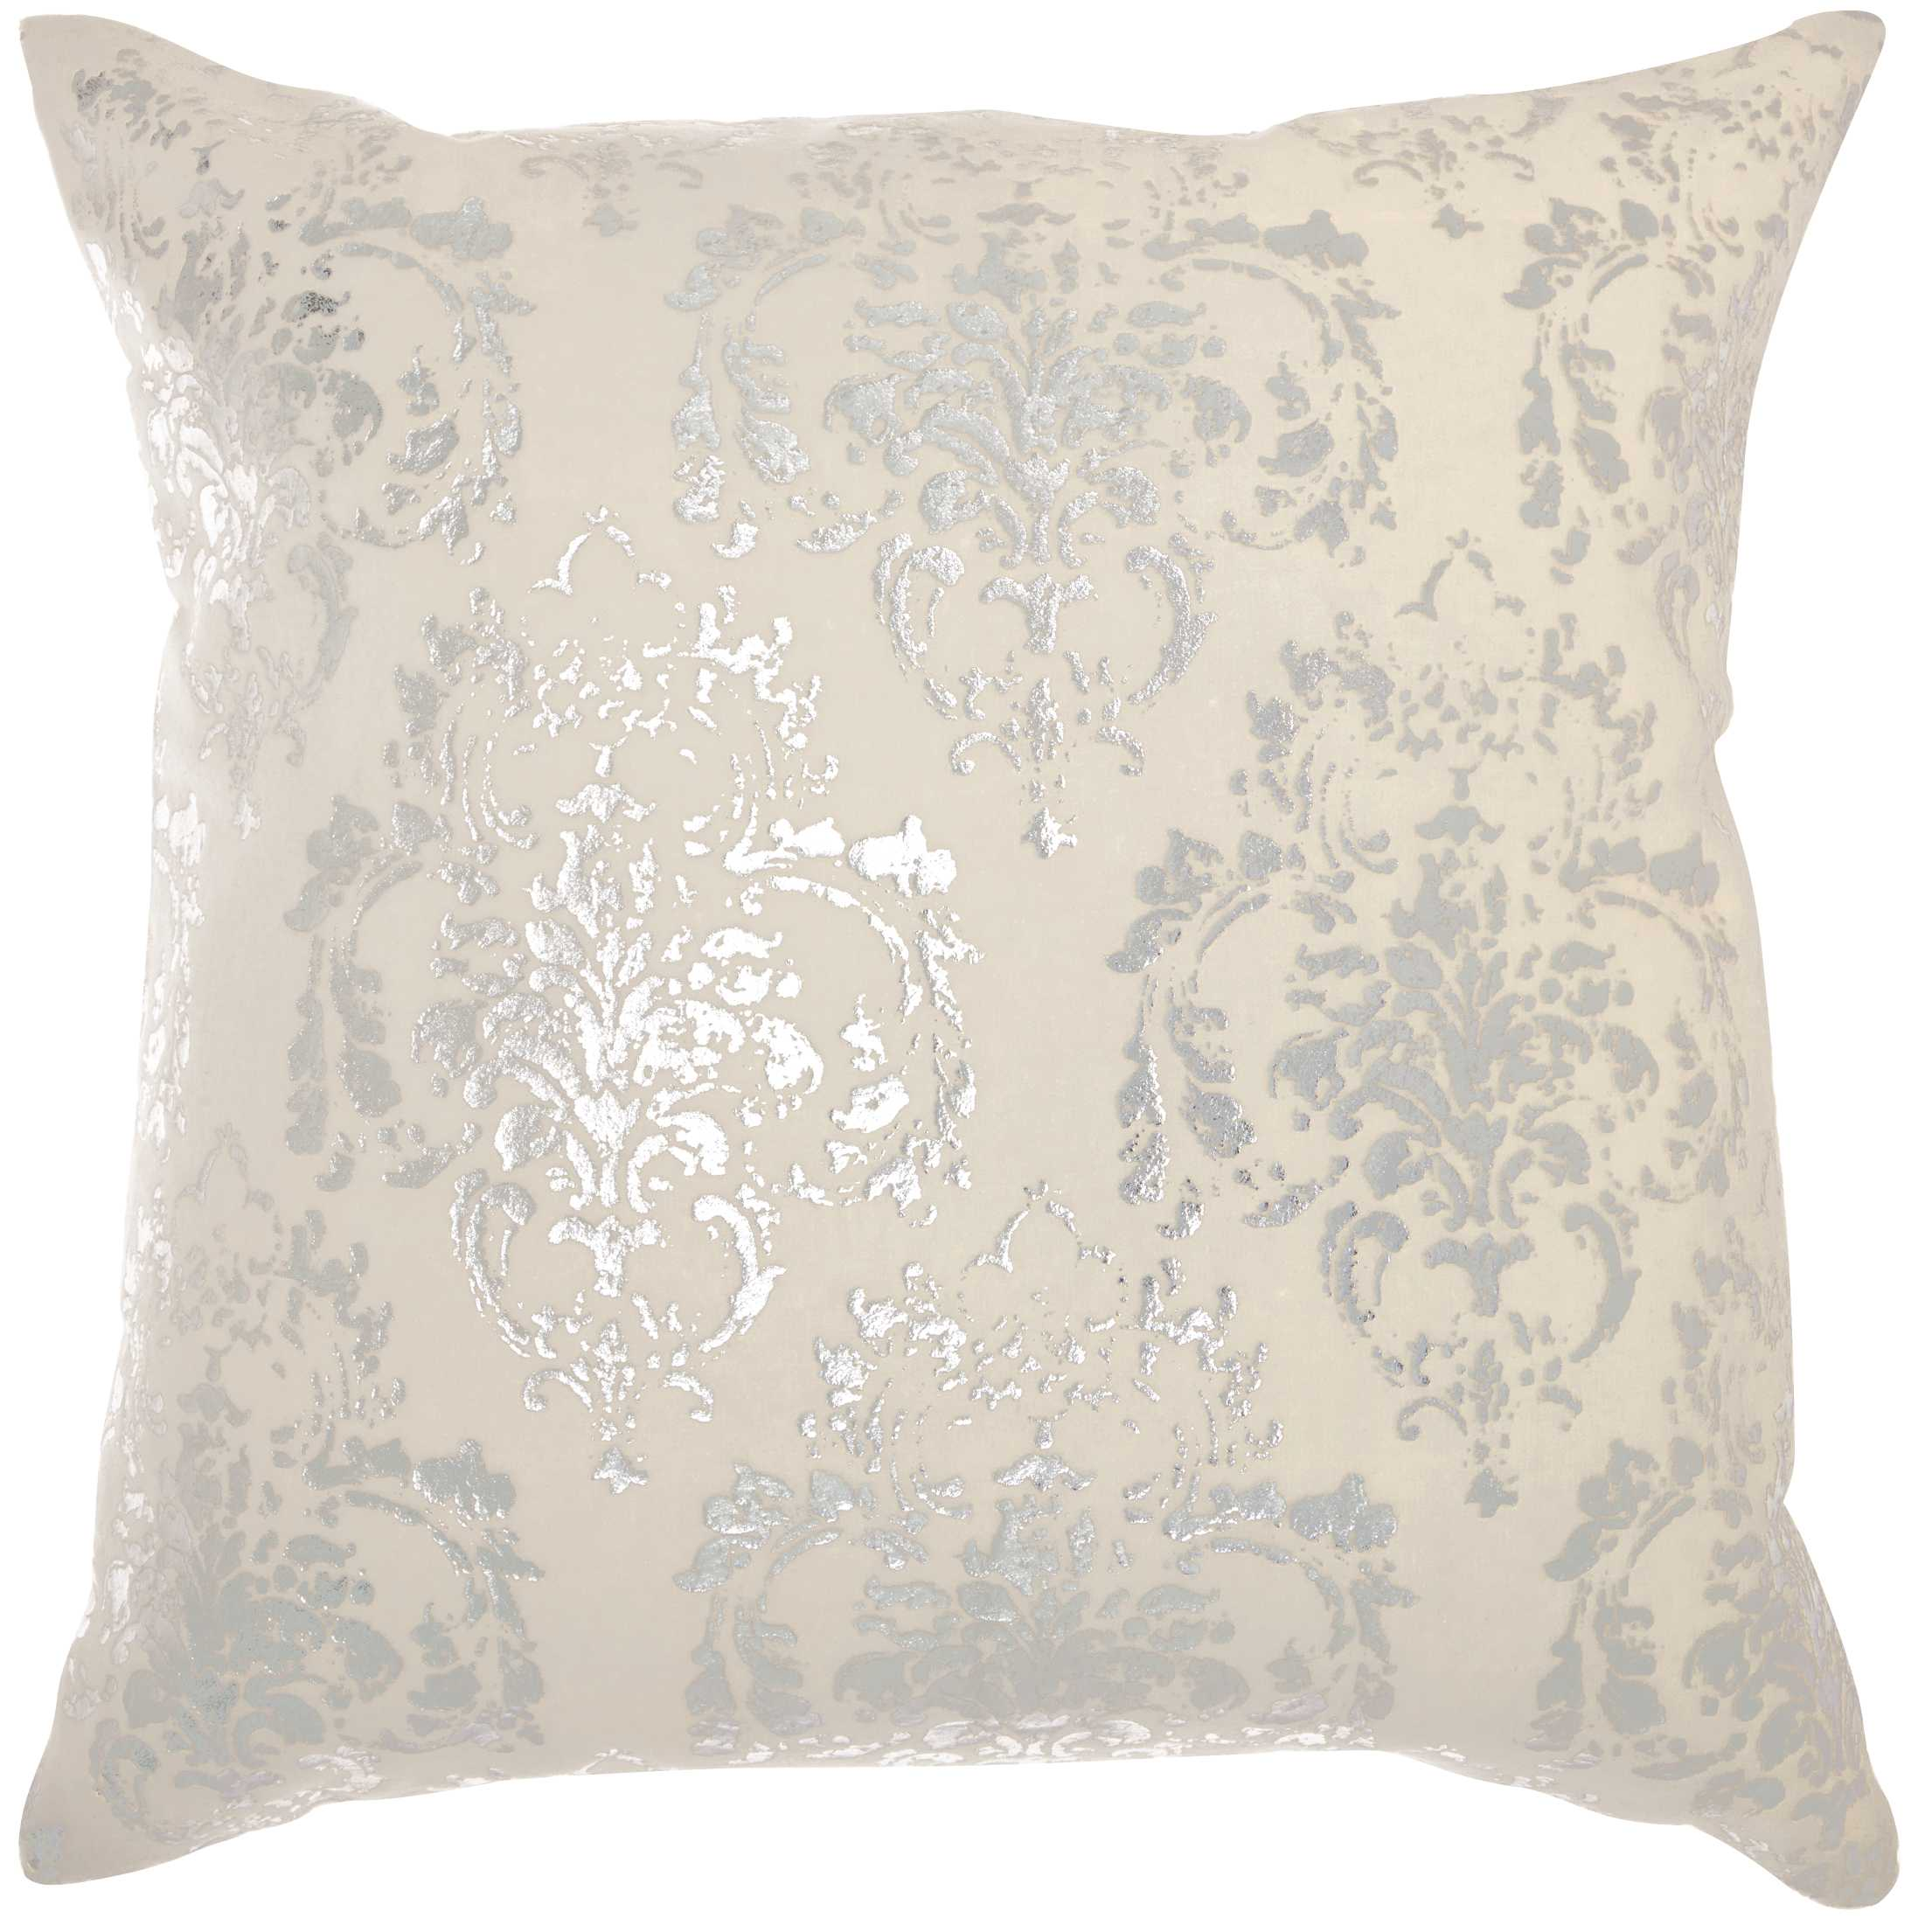 Nourison Luminecence Distressed Damask Ivory Throw Pillow